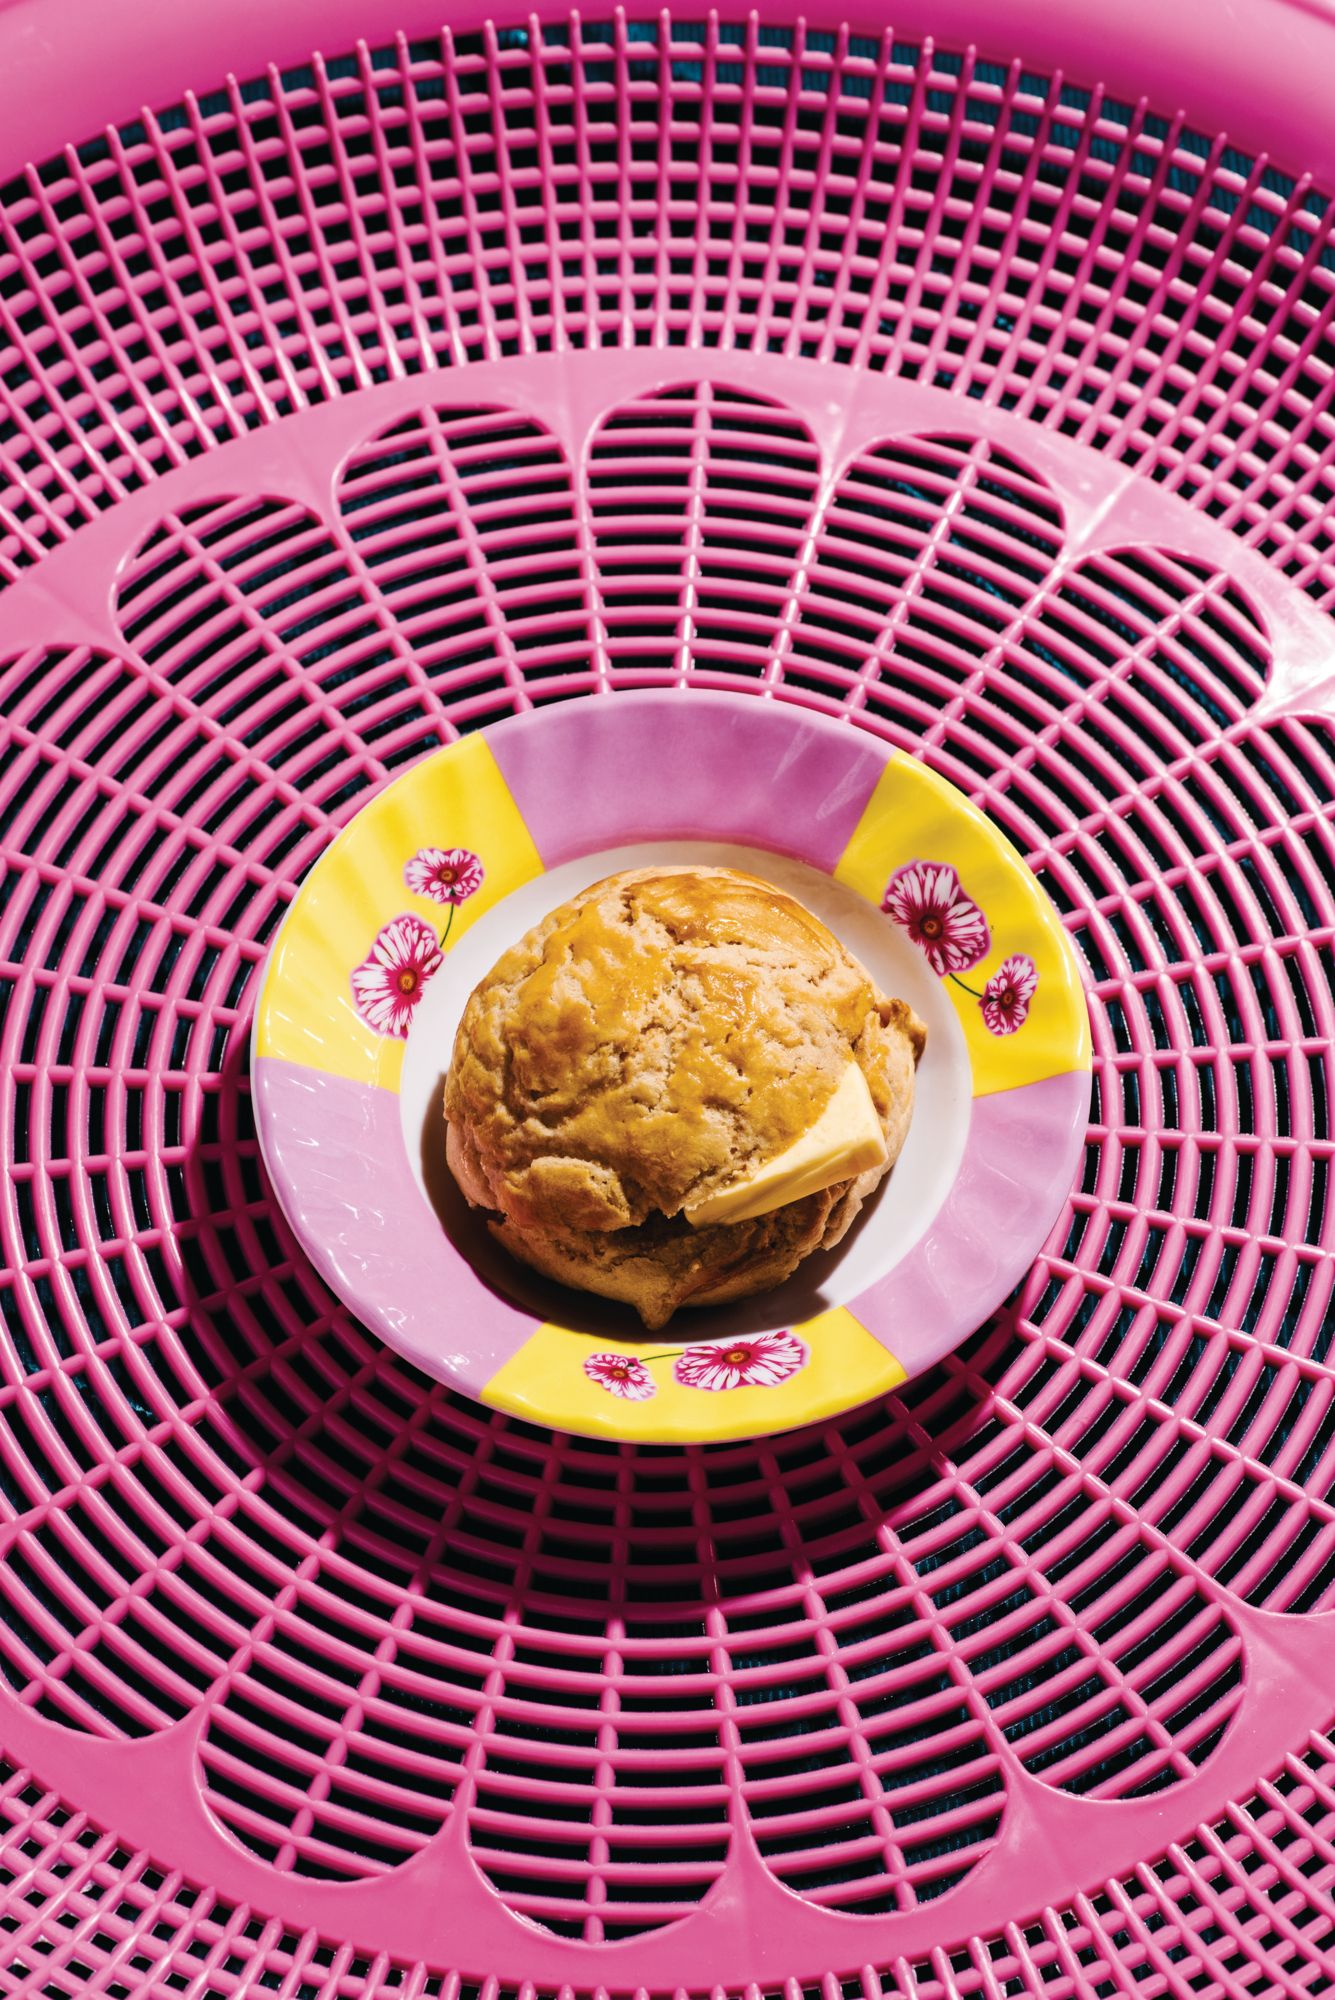 ArChan Chan's Debut Cookbook, Hong Kong Local, Is A Love Letter To The City